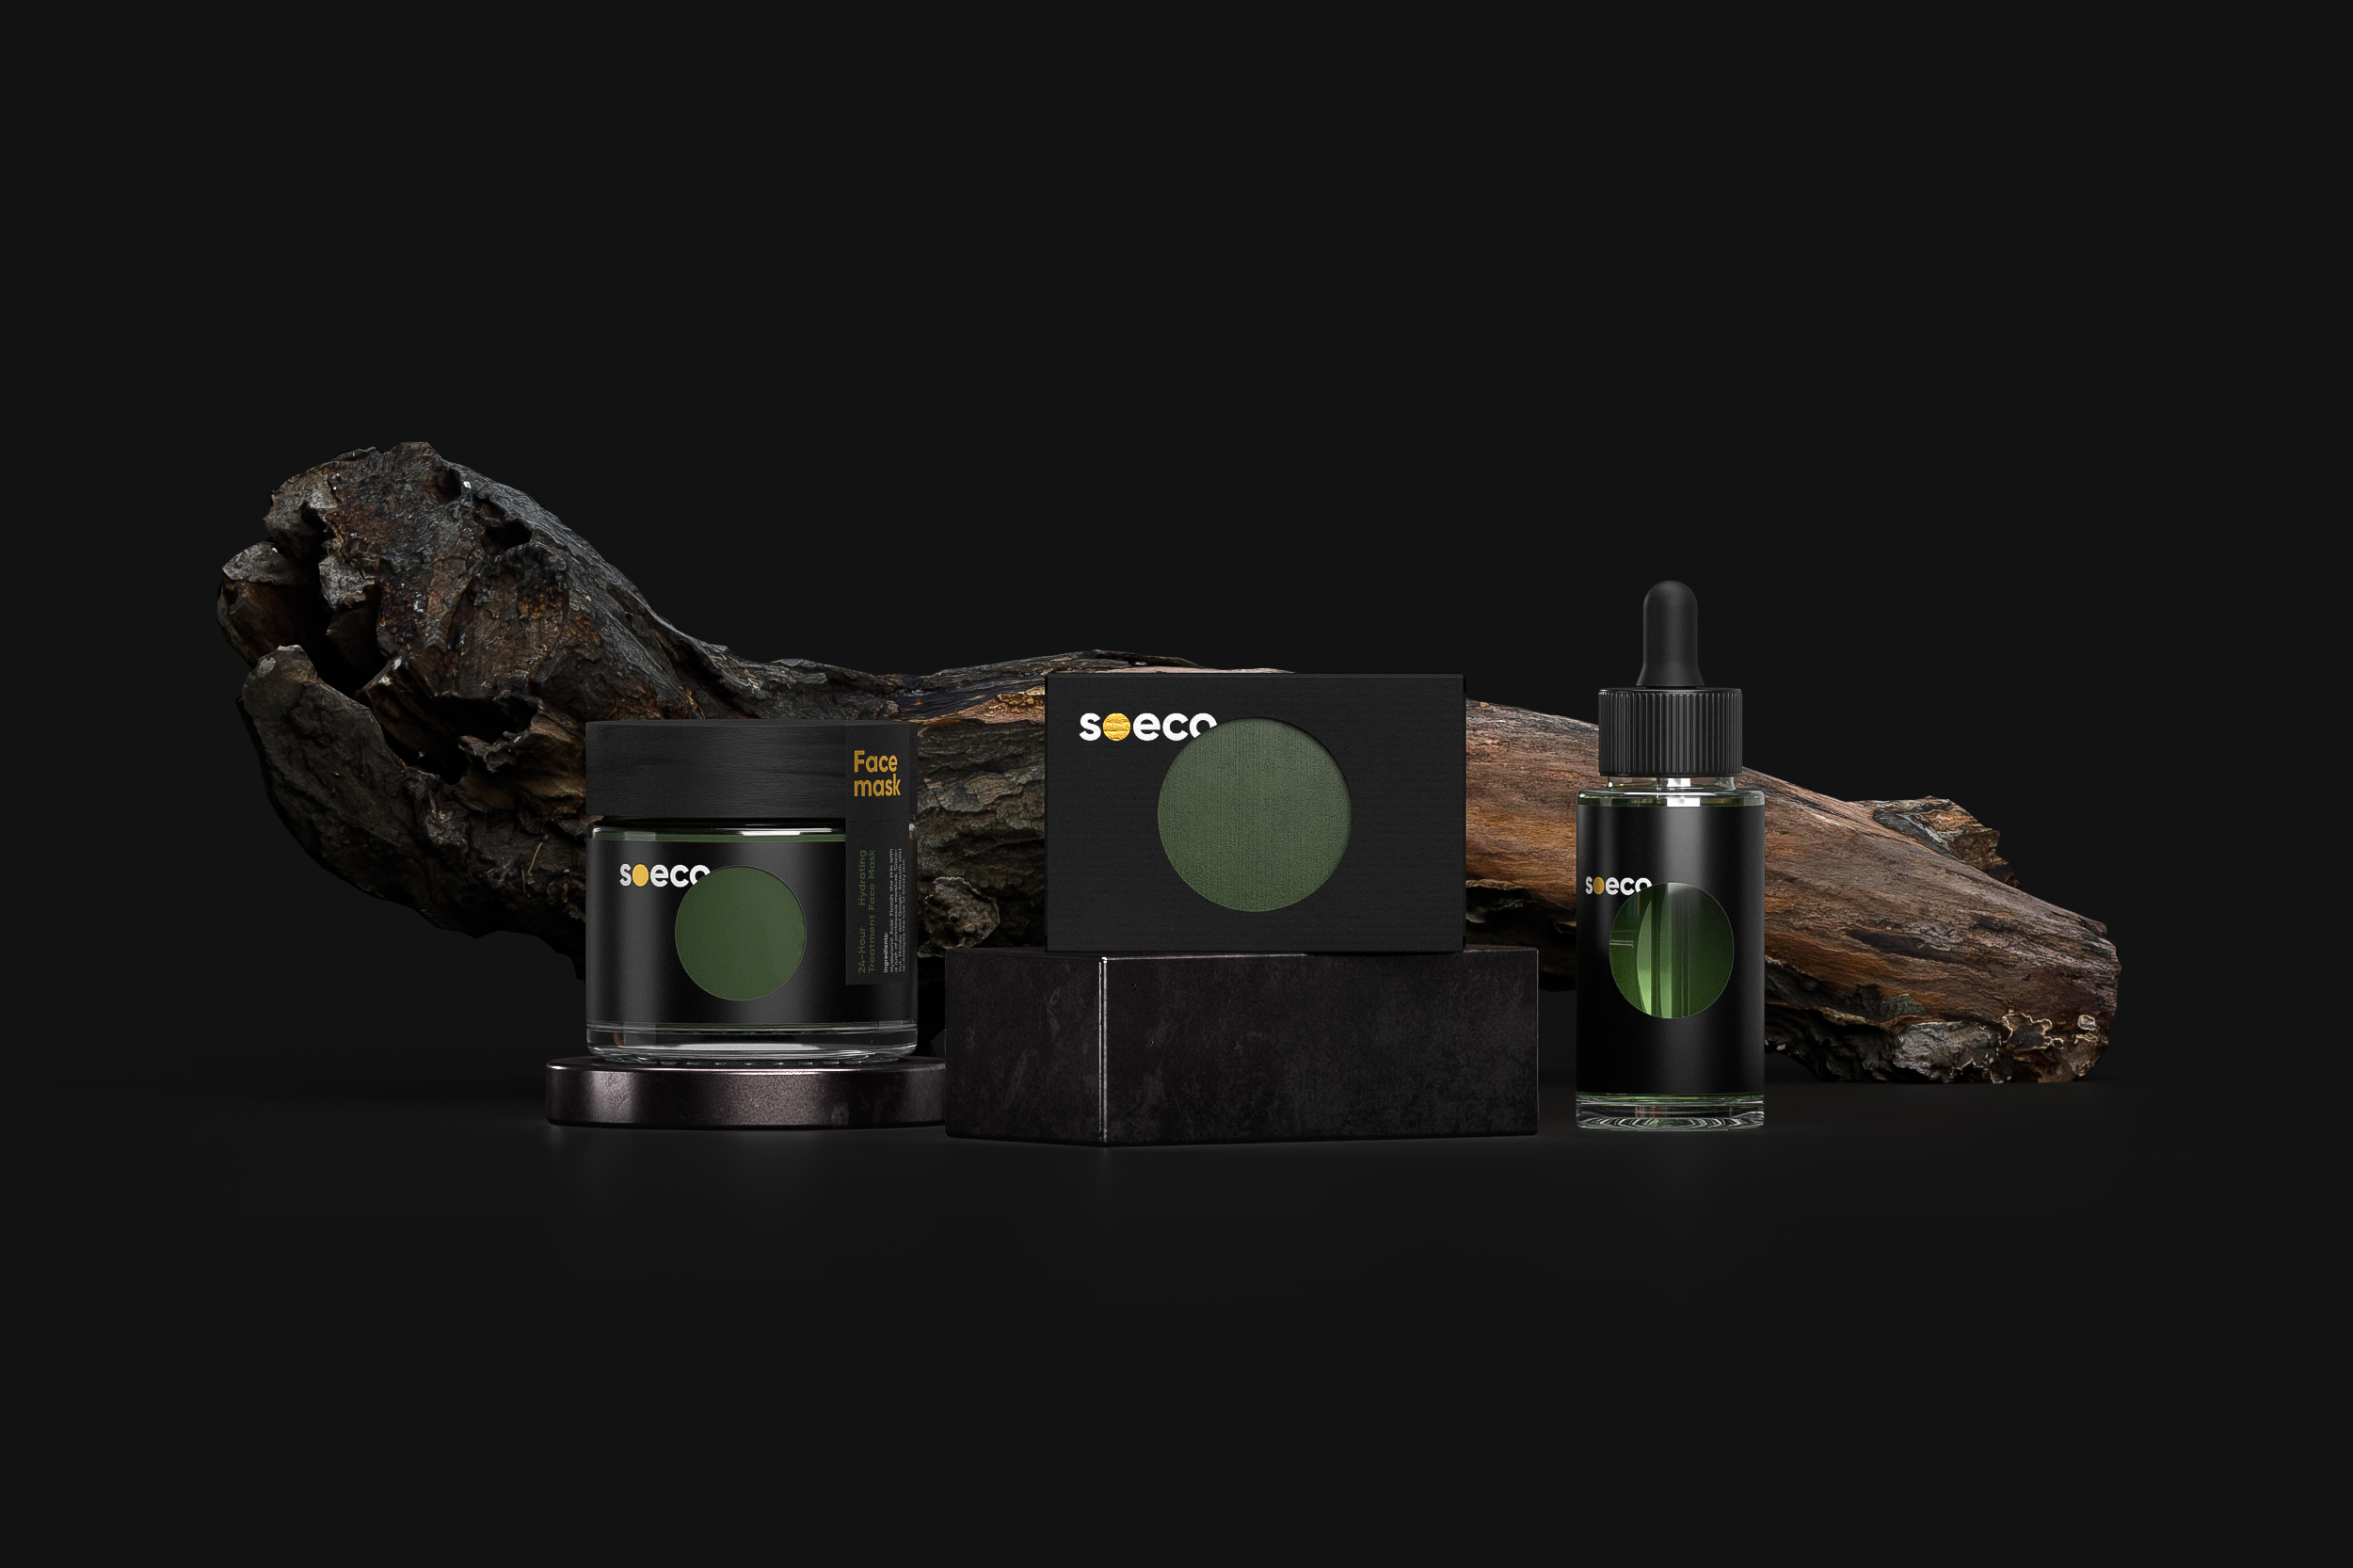 Soeco is a Concept Project for a Line of Skin Care Cosmetic Products